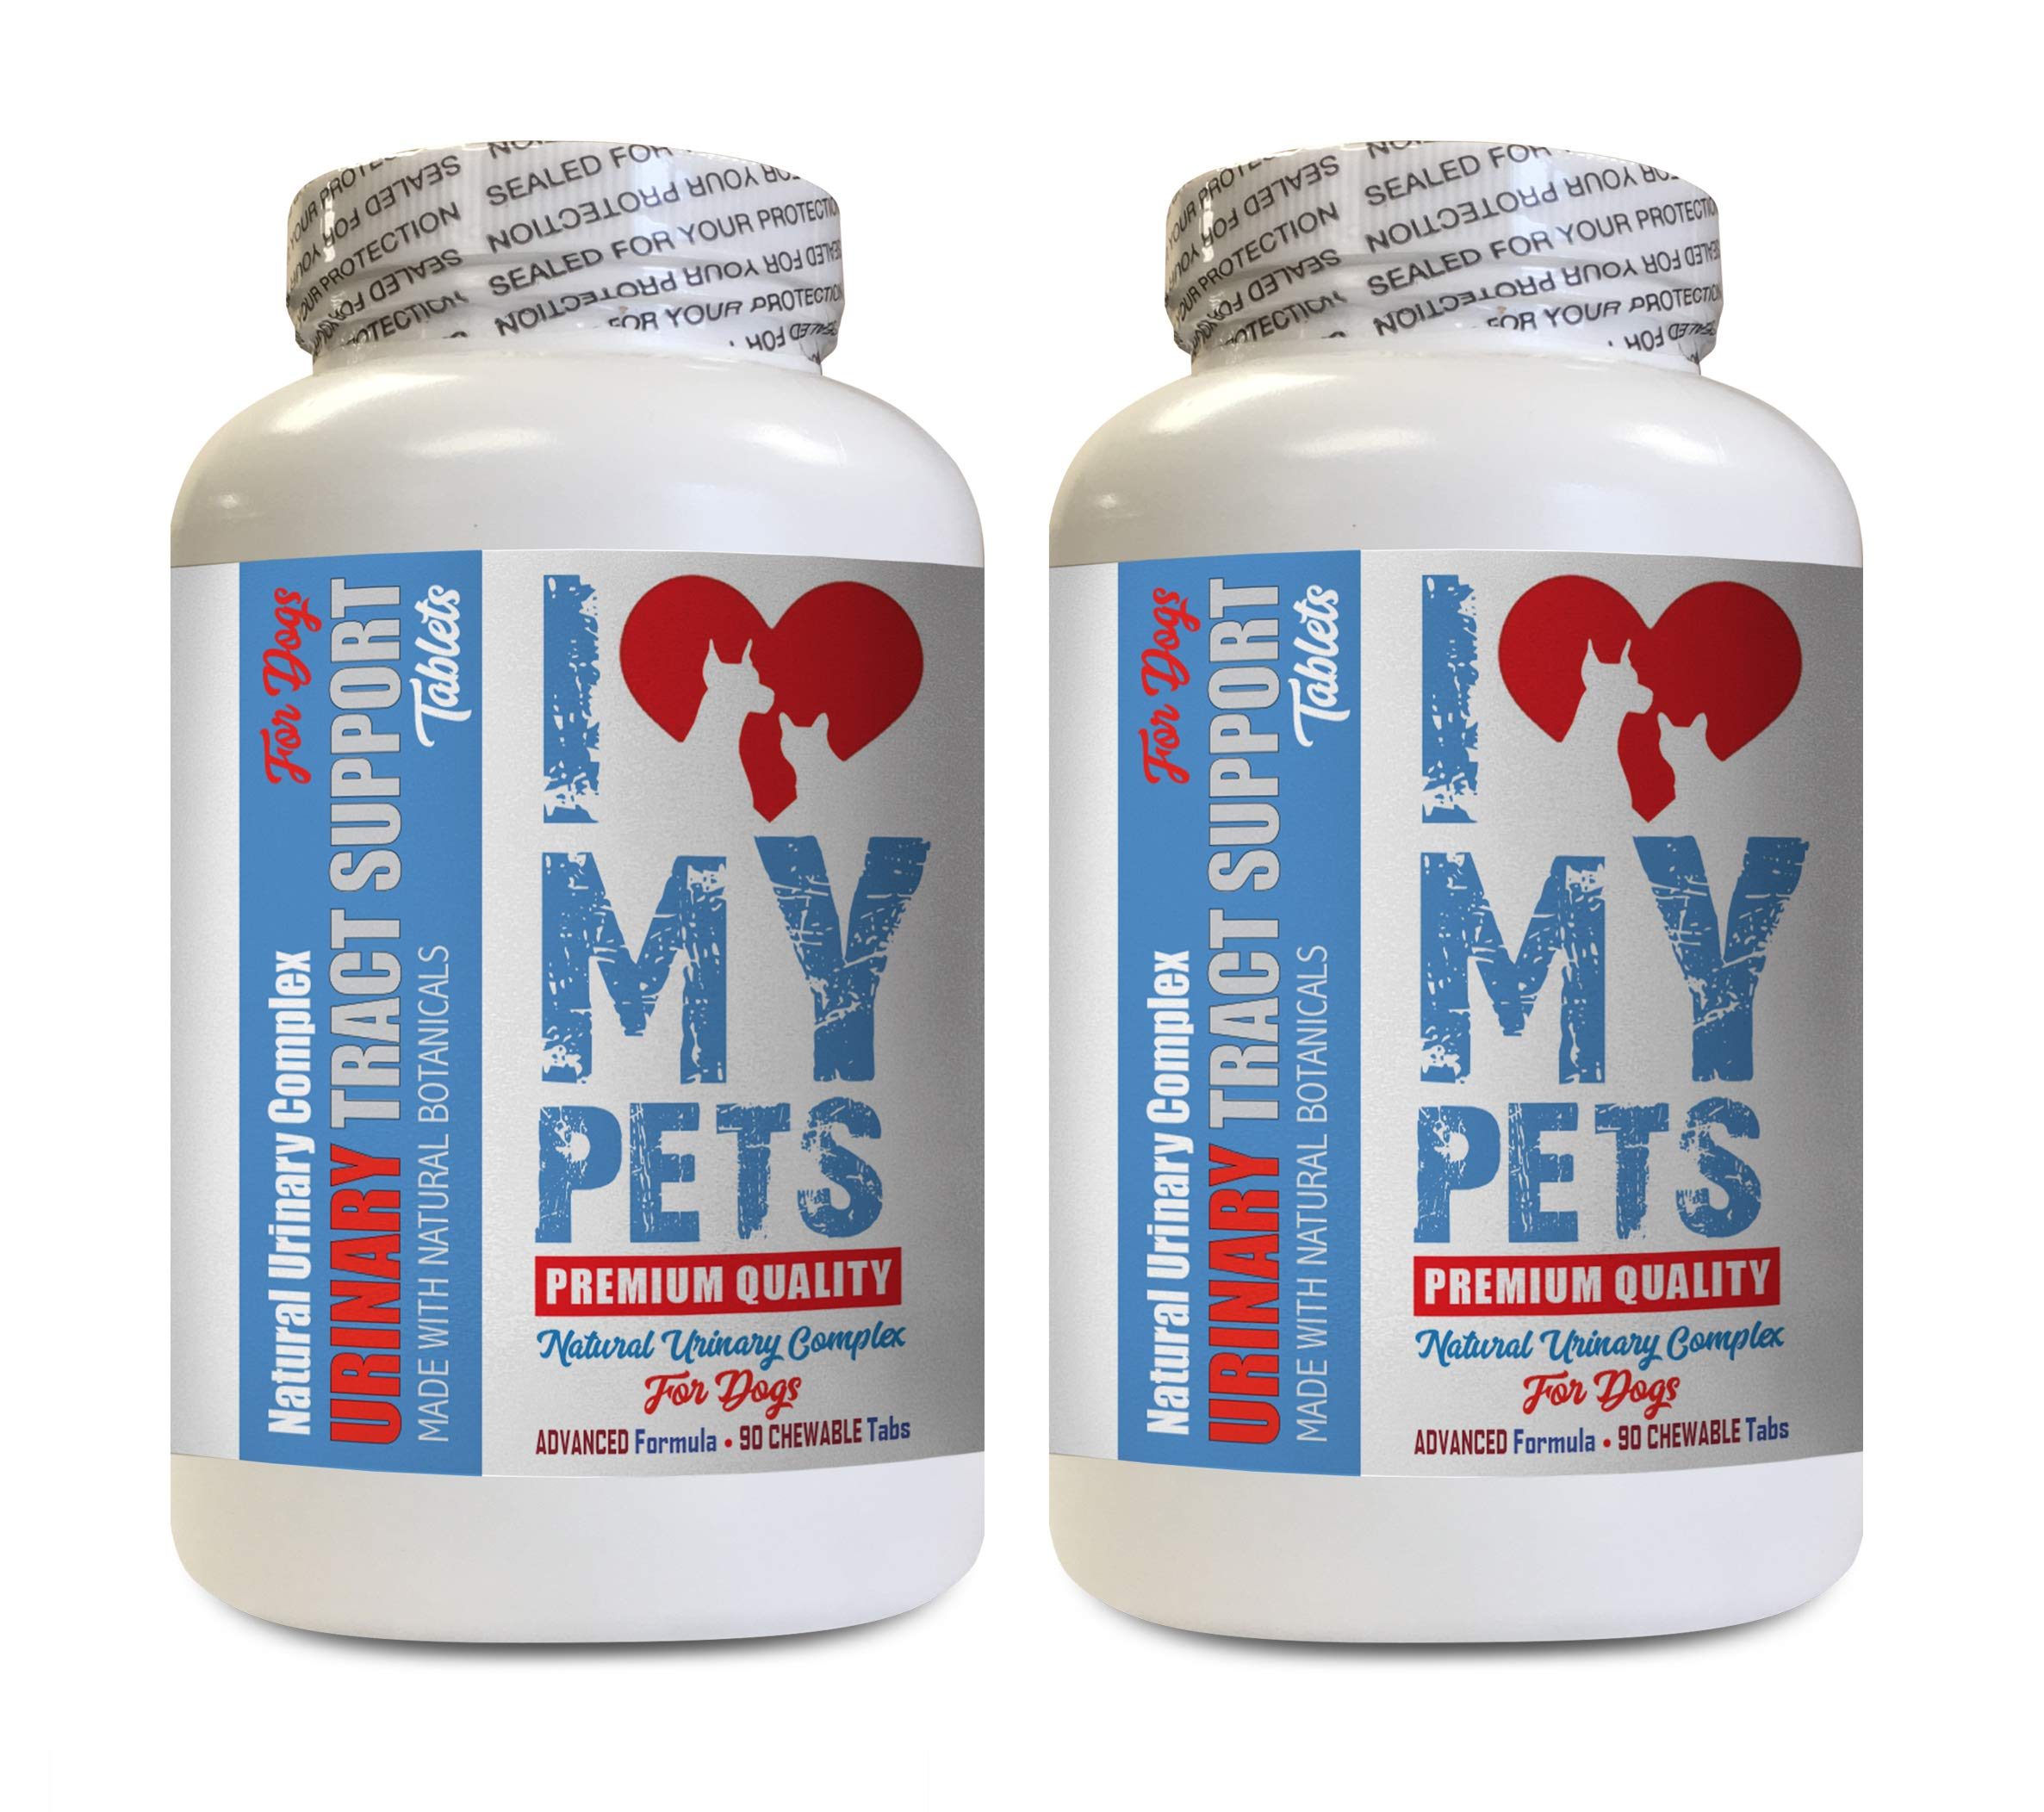 I LOVE MY PETS LLC Urinary Tract Support for Dogs - Dog Urinary Tract Support - UTI Relief Complex - Quality - Dog Urinary Supplement - 180 Treats (2 Bottles) by I LOVE MY PETS LLC